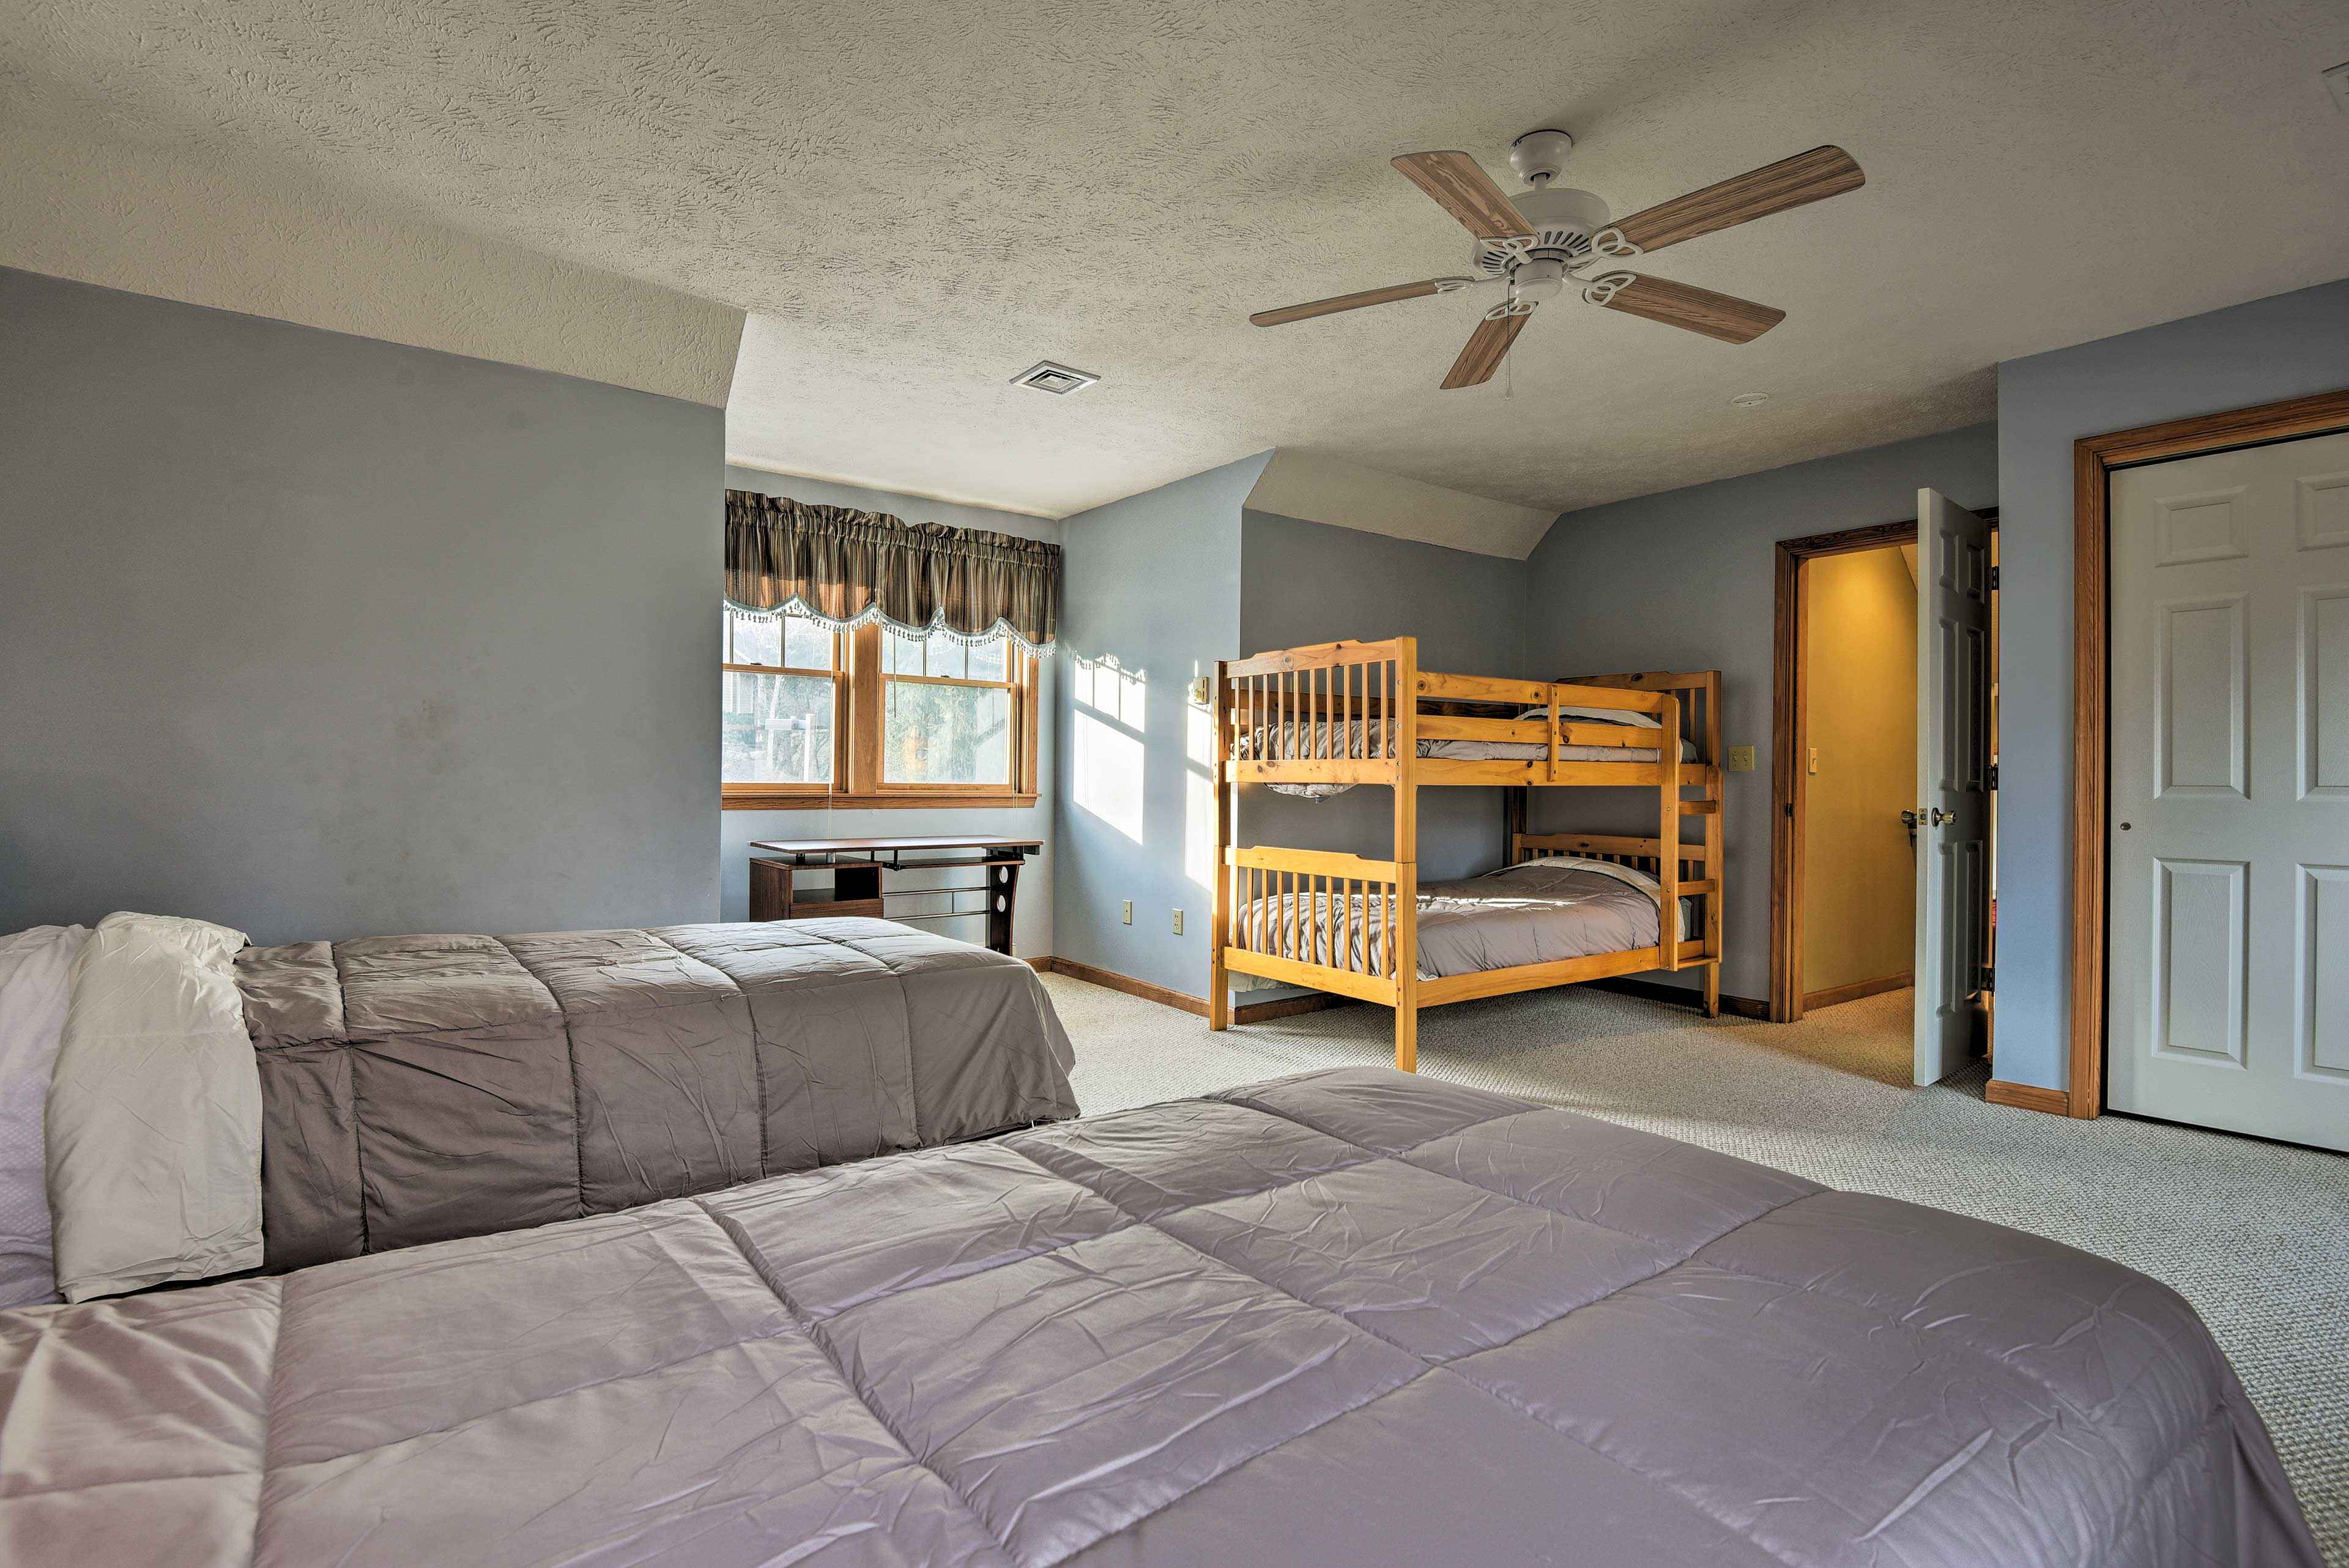 Kids love making the loft their home base for the trip!